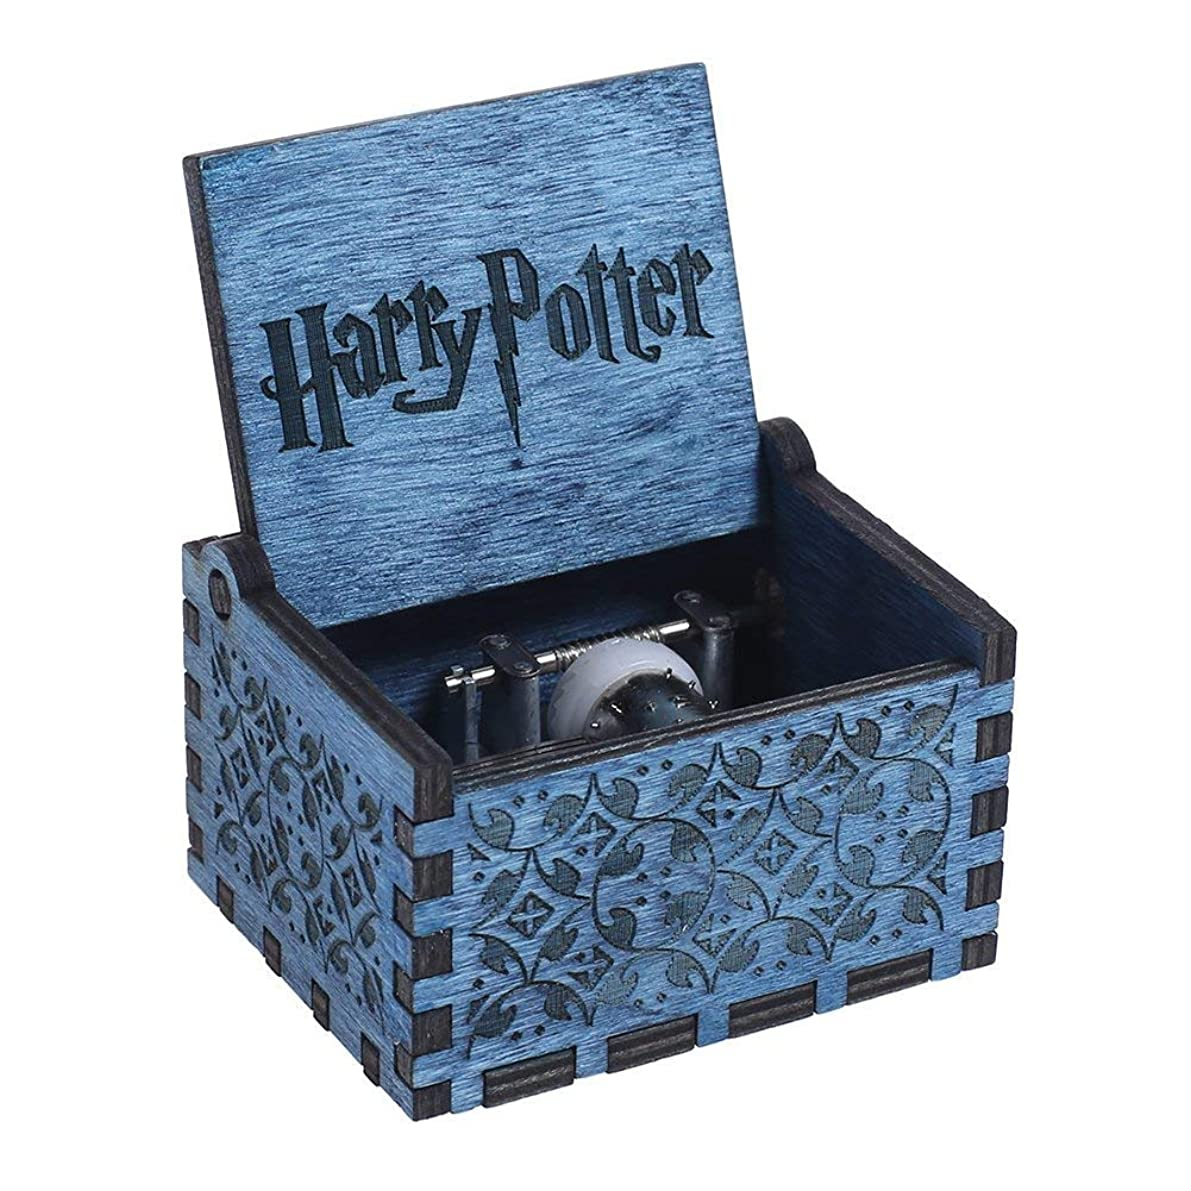 Dream Loom Wooden Music Box,Hand Crank Classical Carved Wooden Harry Potter Musical Box,Gift for Kids,Family and Friends (Blue)